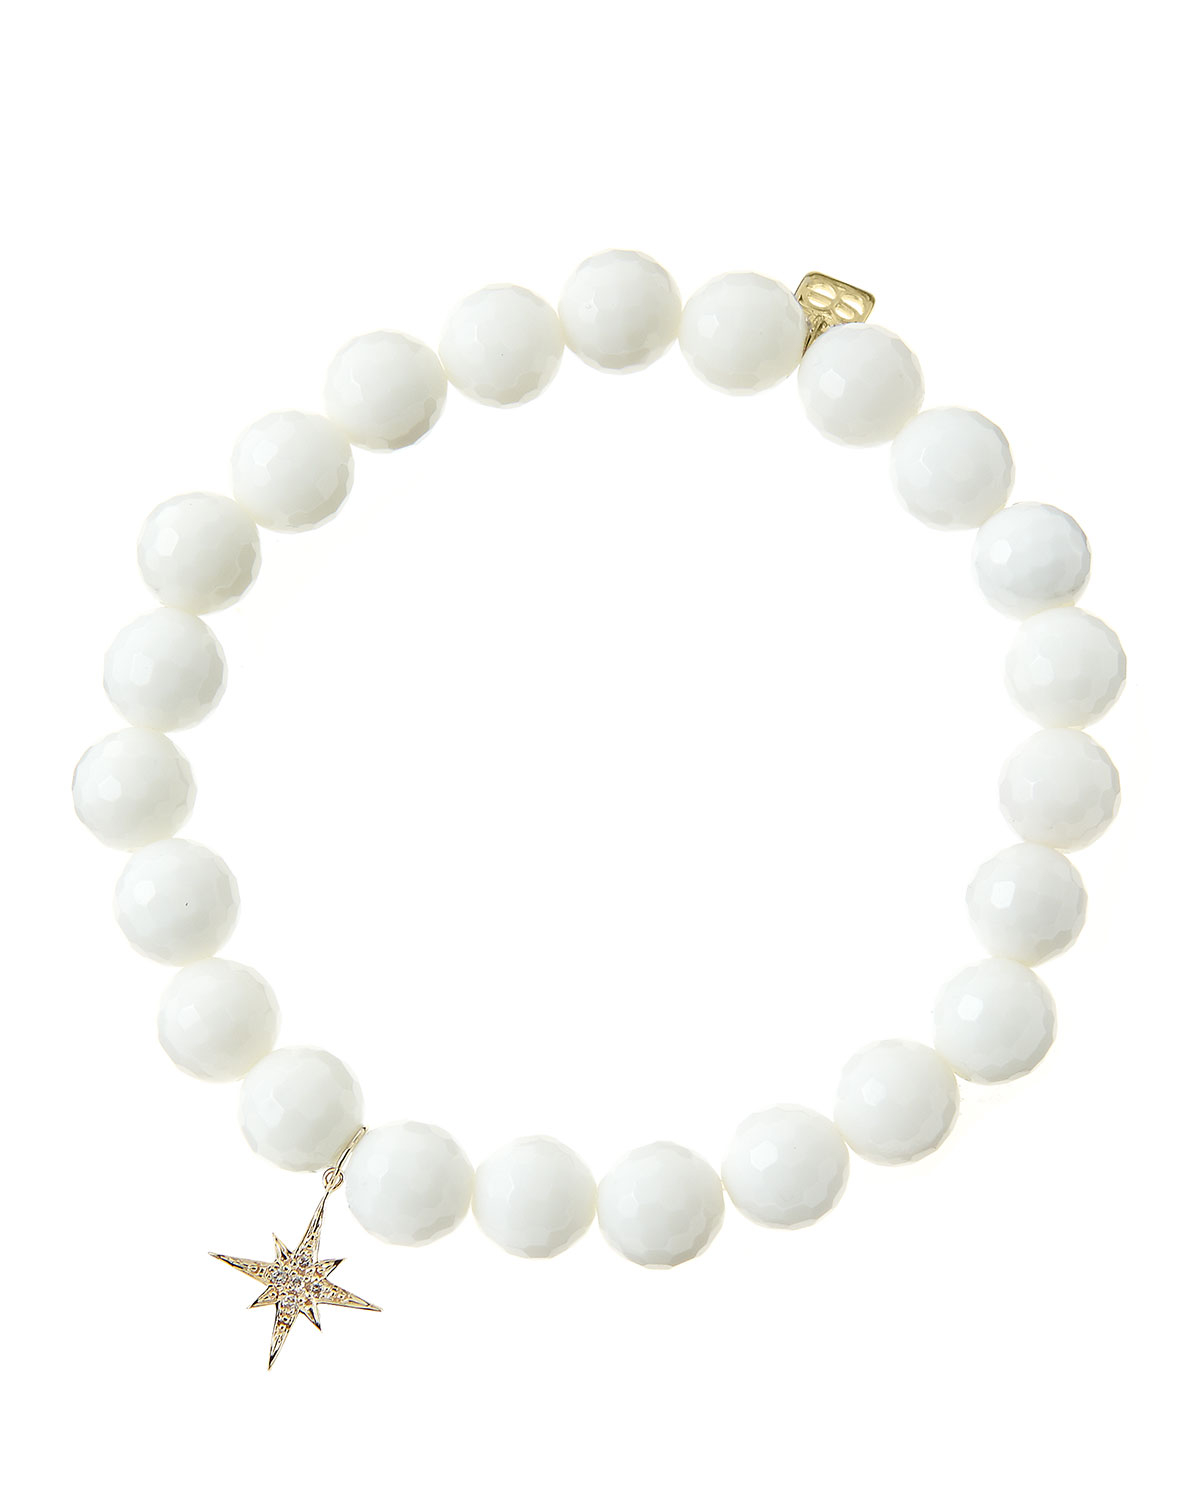 Sydney Evan 8mm Faceted White Agate Beaded Bracelet With